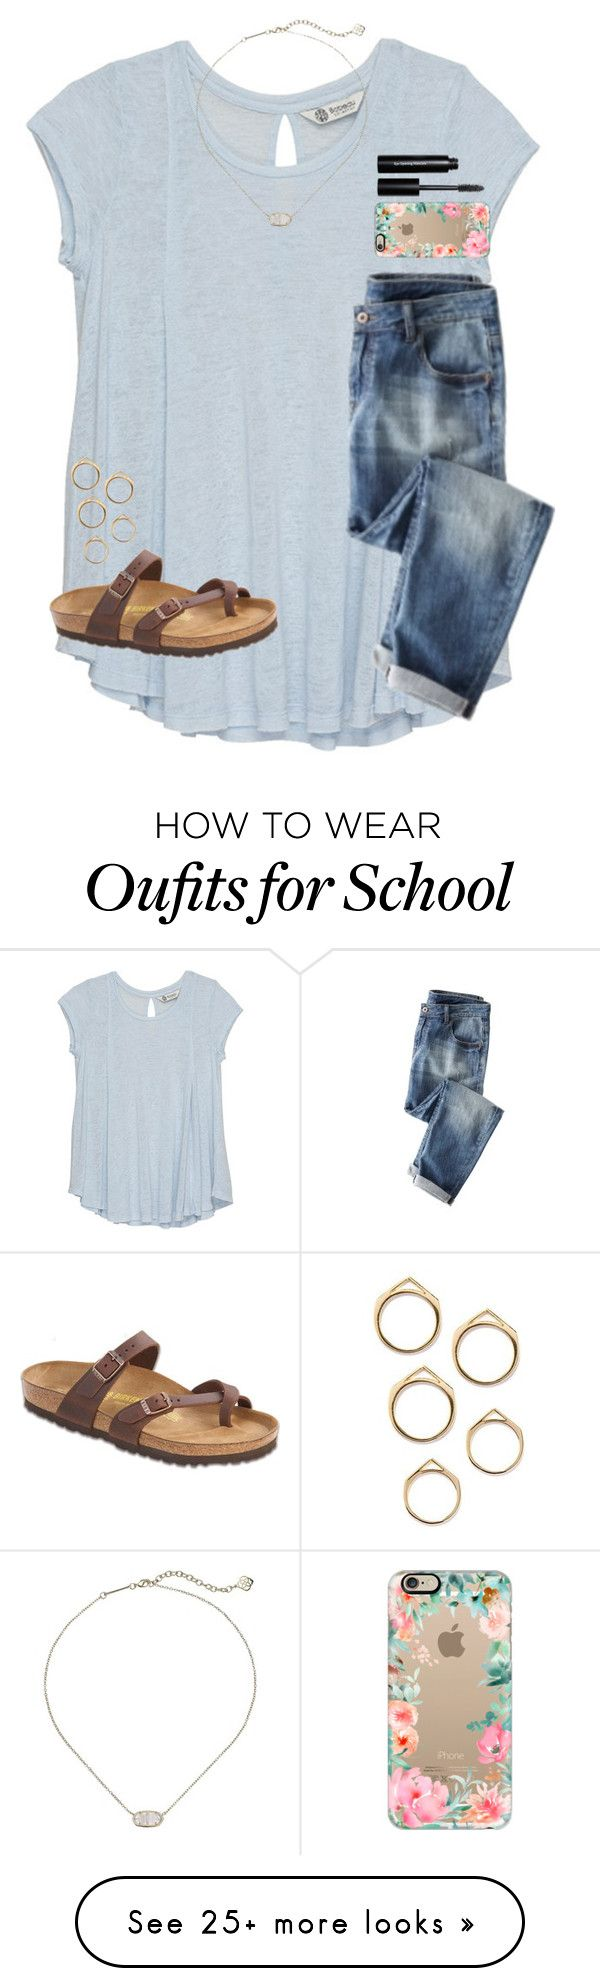 """there's only a week left of school!!"" by mimichavi on Polyvore featuring Bobeau, Bobbi Brown Cosmetics, Birkenstock, Casetify and Kendra Scott"